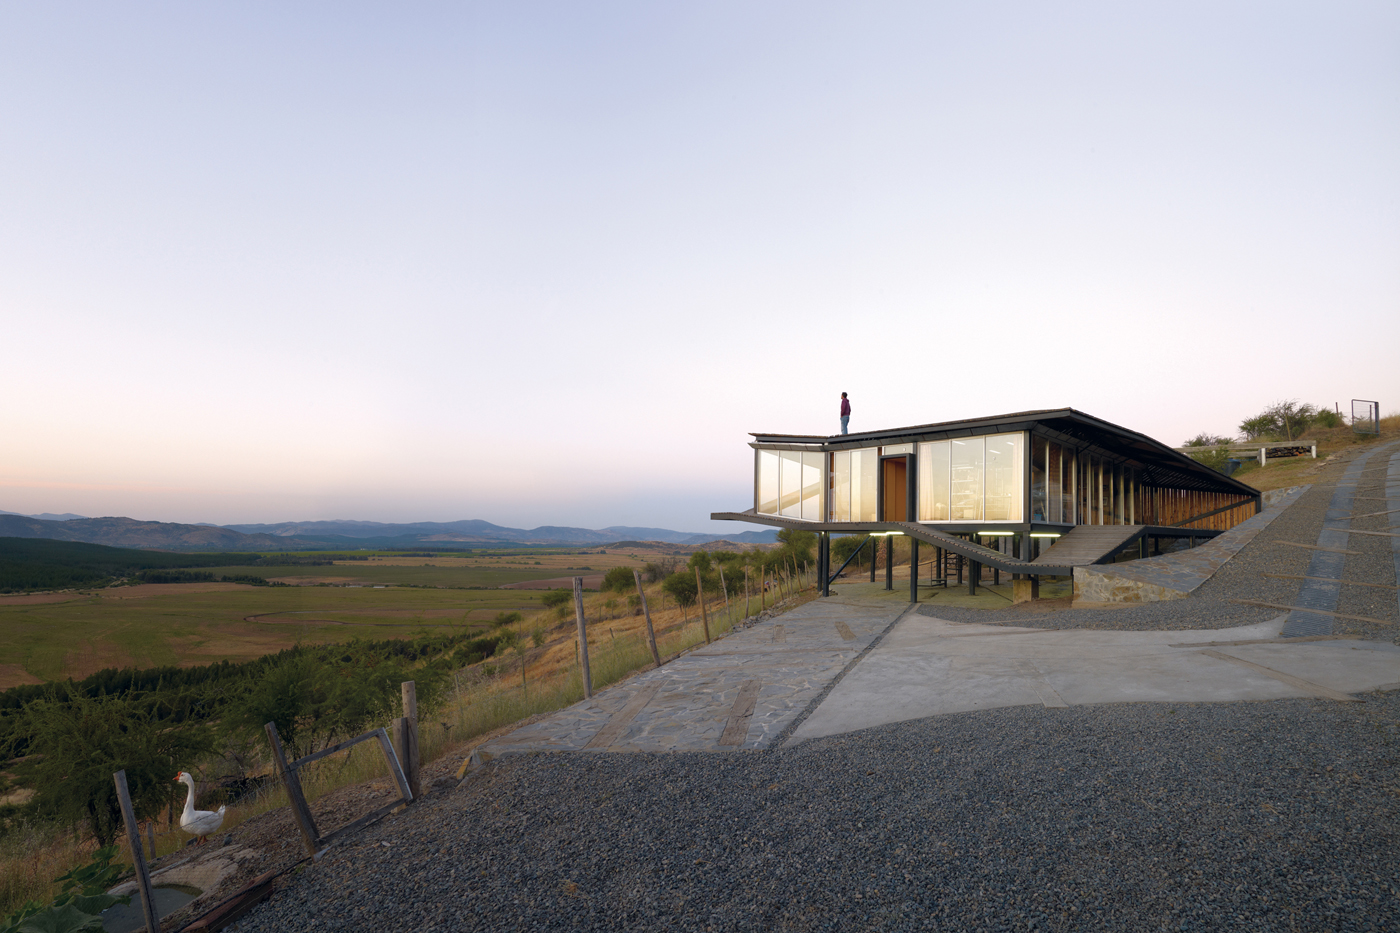 Kiltro House by Juan Pablo Corvalan in Talca, Pencahue, Chile